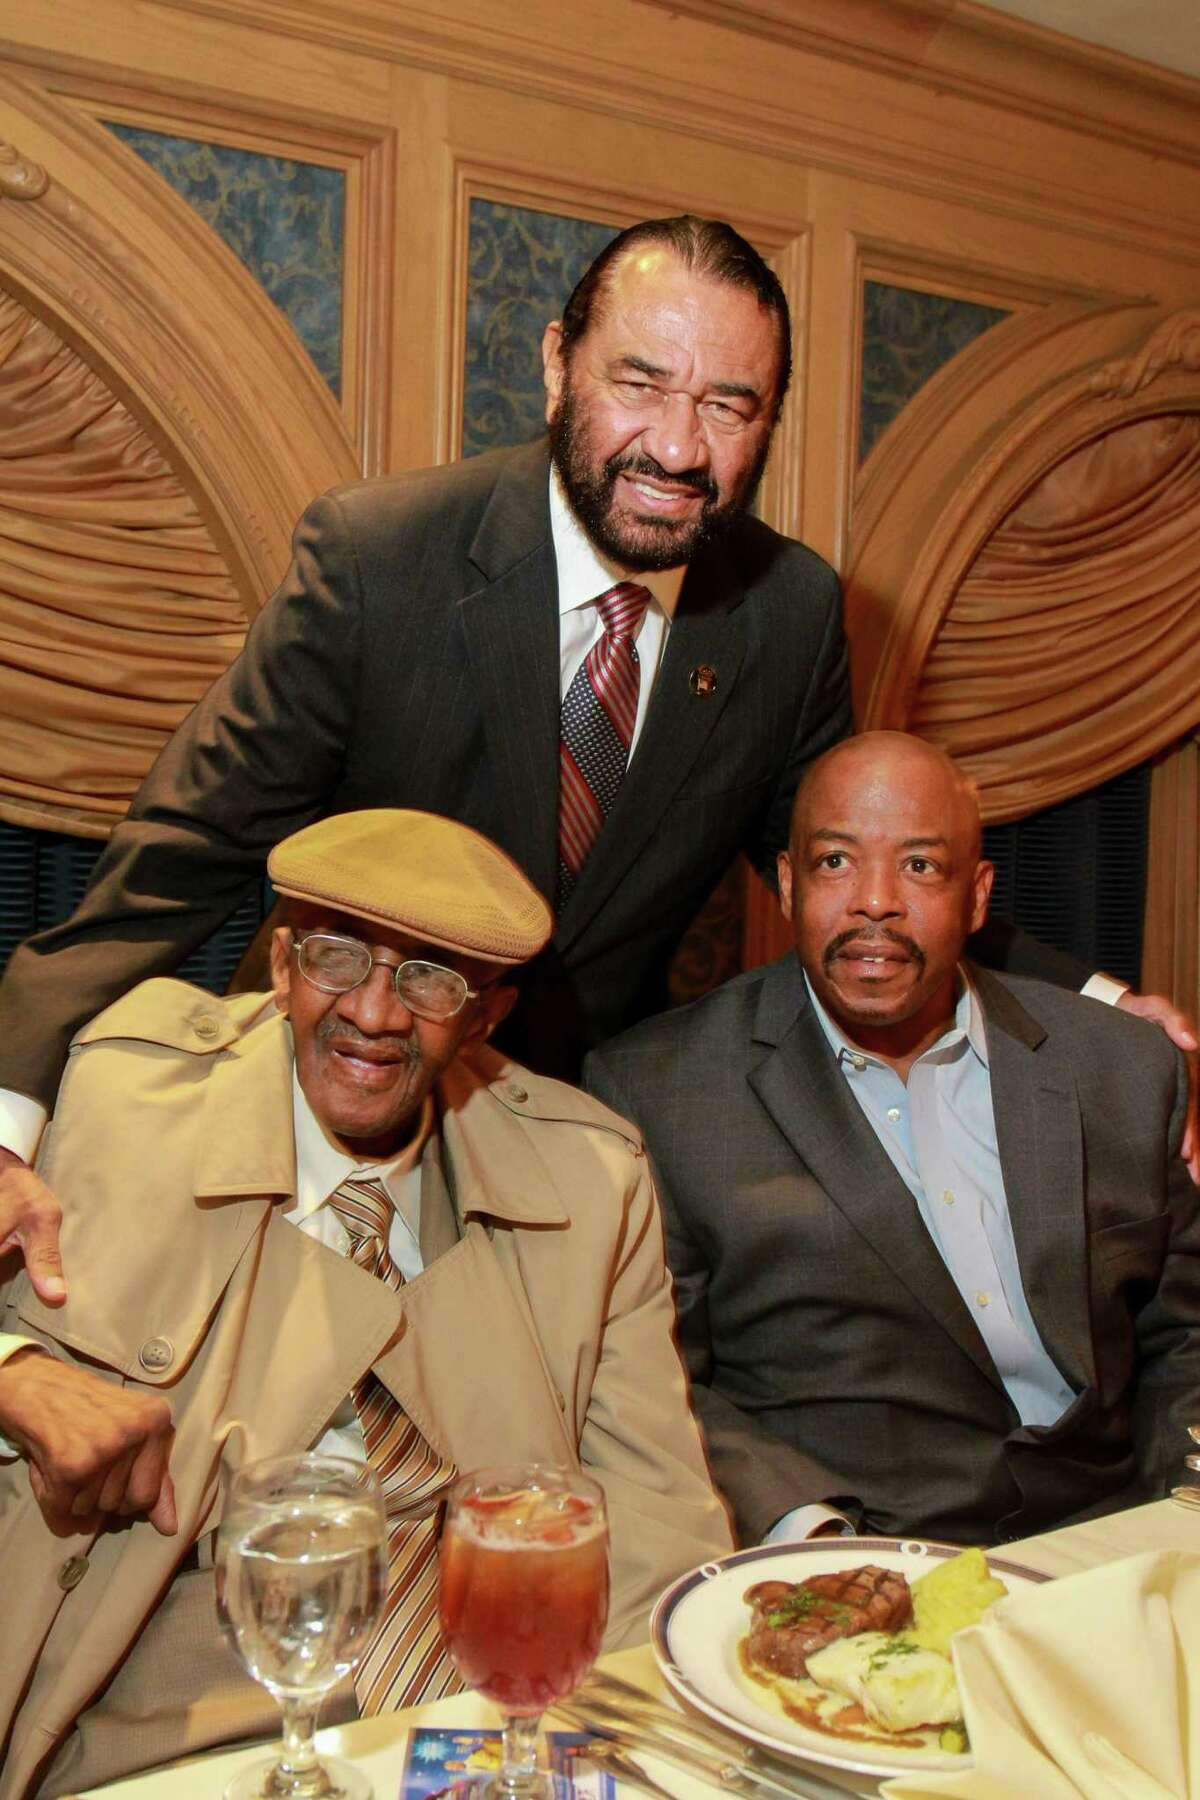 Ovide Duncantell, Jr., founder and executive director of the Black Heritage Society, Inc., from left, Congressman Al Green, and Sylvester Brown, senior operations manager at Black Heritage Society, Inc., at BHS's Mountaintop Awards Luncheon, honoring Kenny Washington, the first African American player to sign a contract with the NFL. (For the Chronicle/Gary Fountain, January 28, 2017)